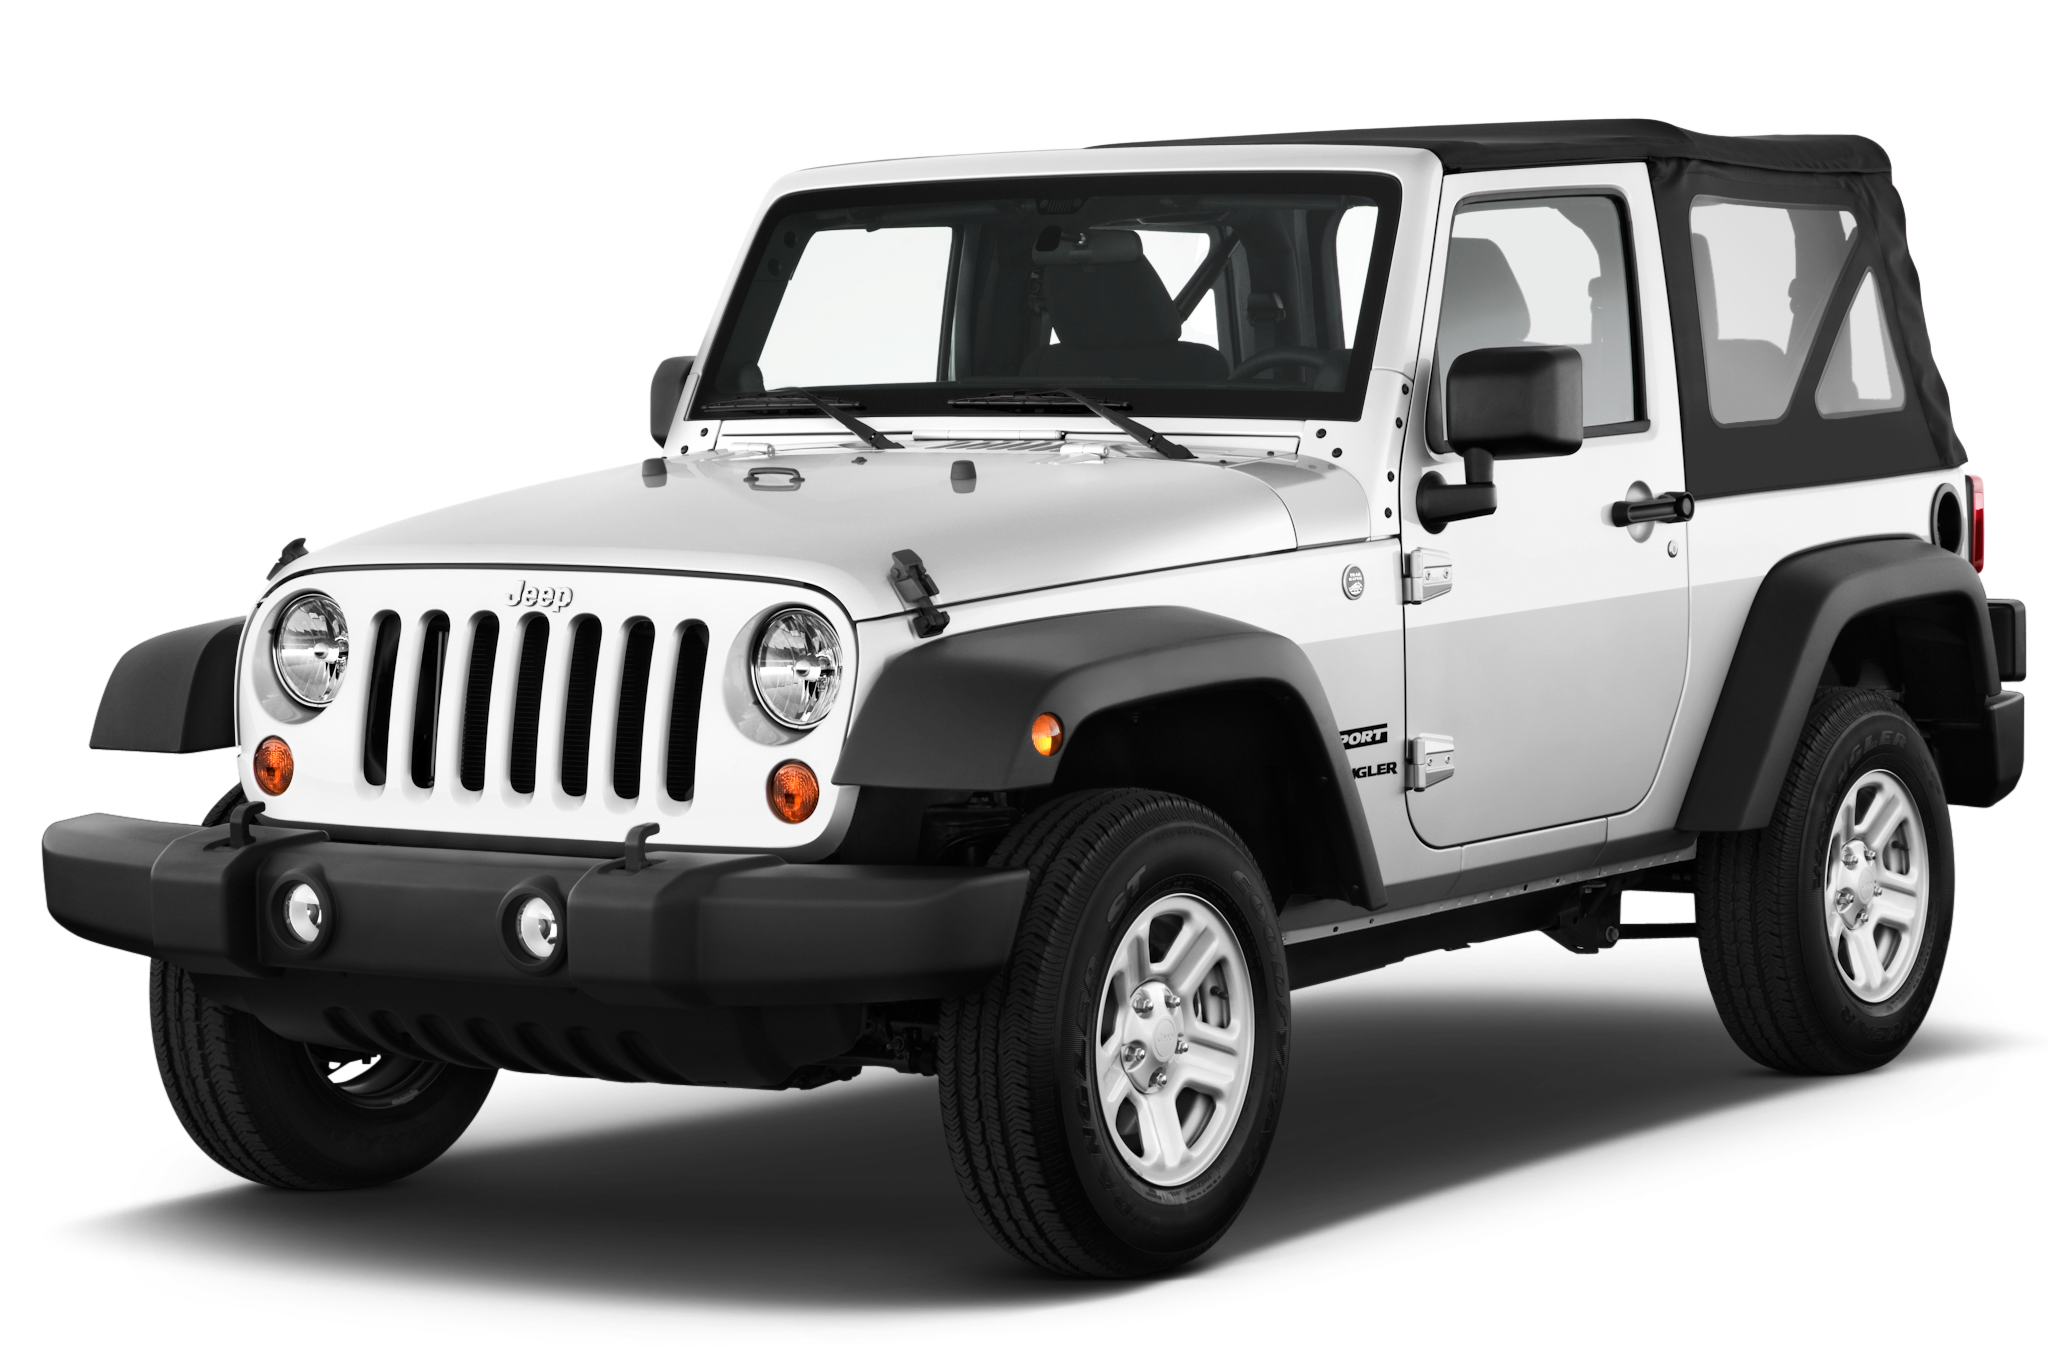 jeep road the off wrangler willys cars roading new review rubicon nrm reviews wheeler tests